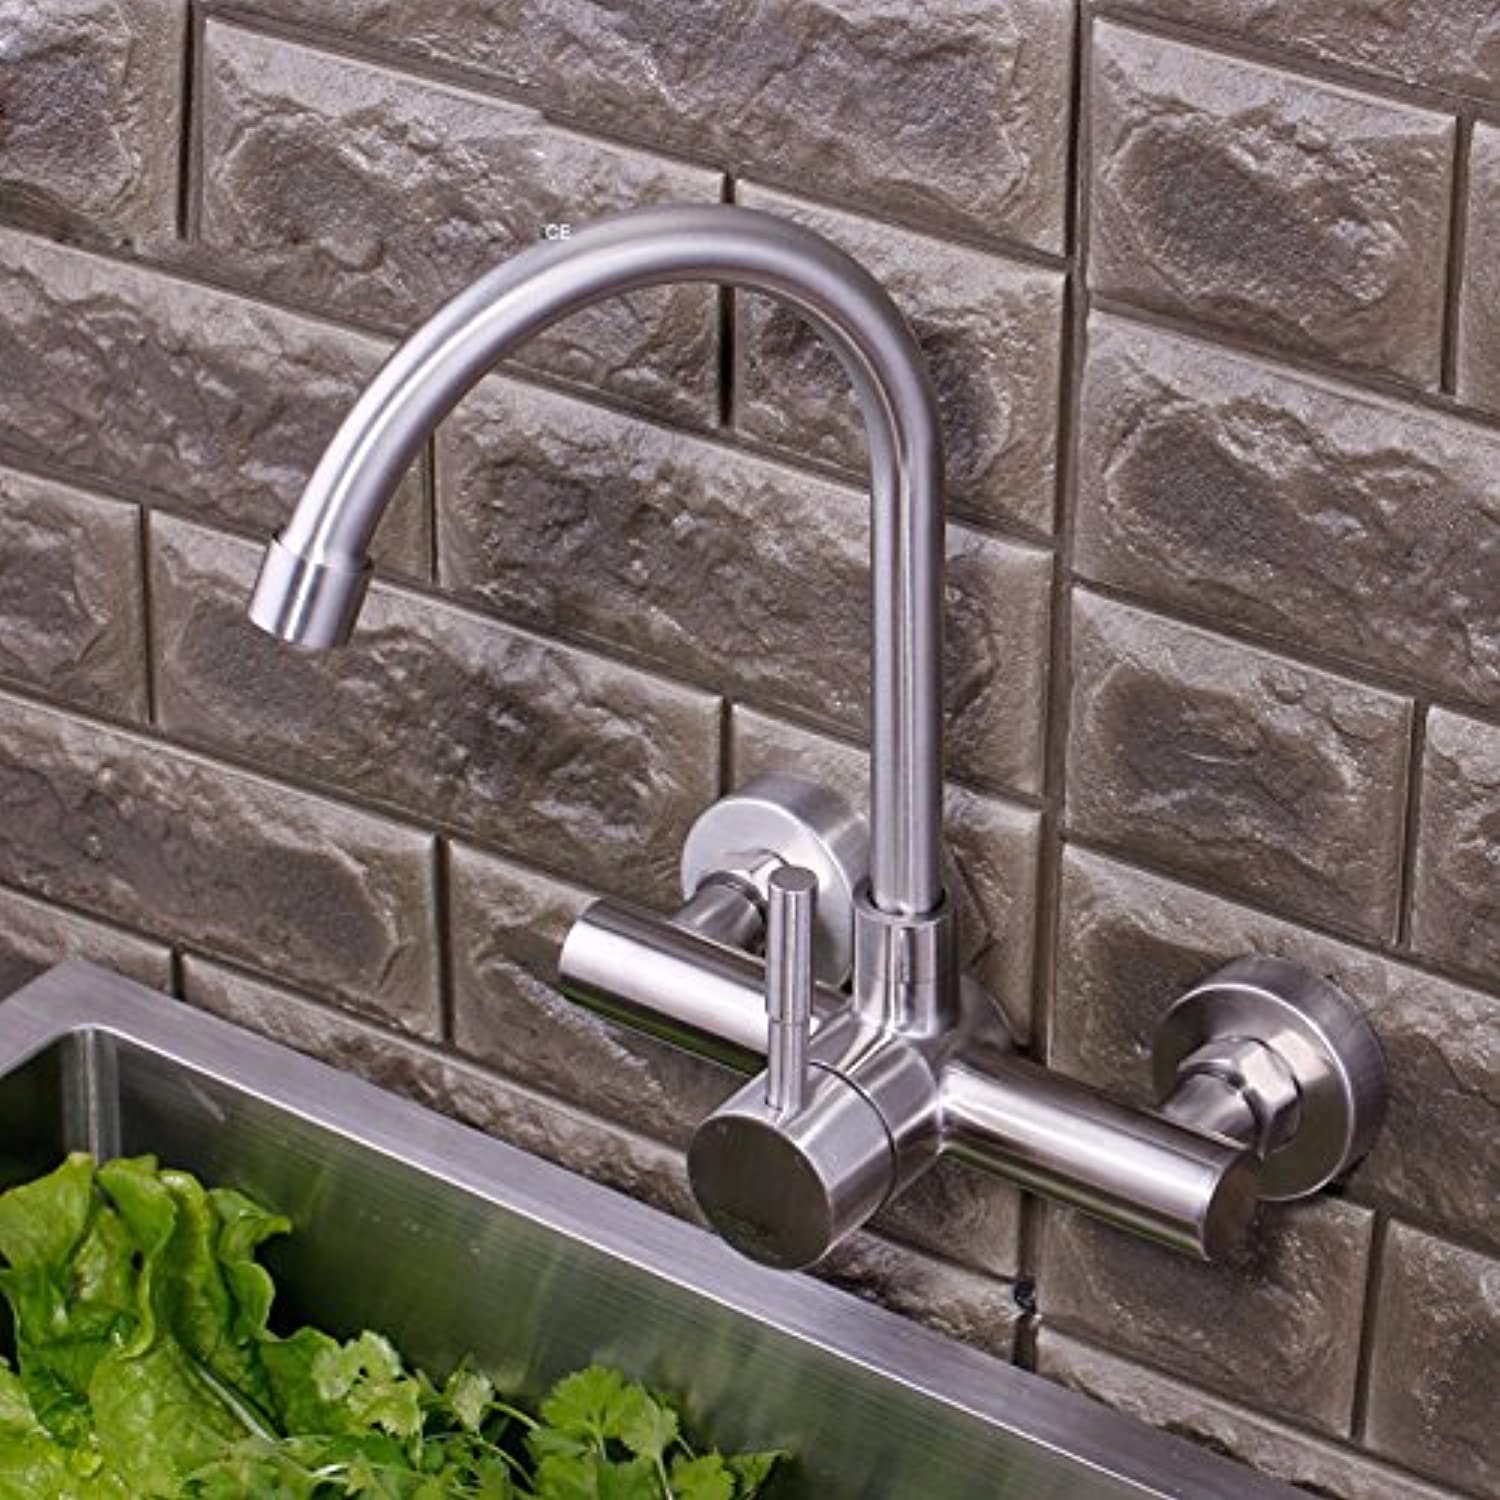 Lpophy Bathroom Sink Mixer Taps Faucet Bath Waterfall Cold and Hot Water Tap for Washroom Bathroom and Kitchen Stainless Steel Hot and Cold Universal redation B